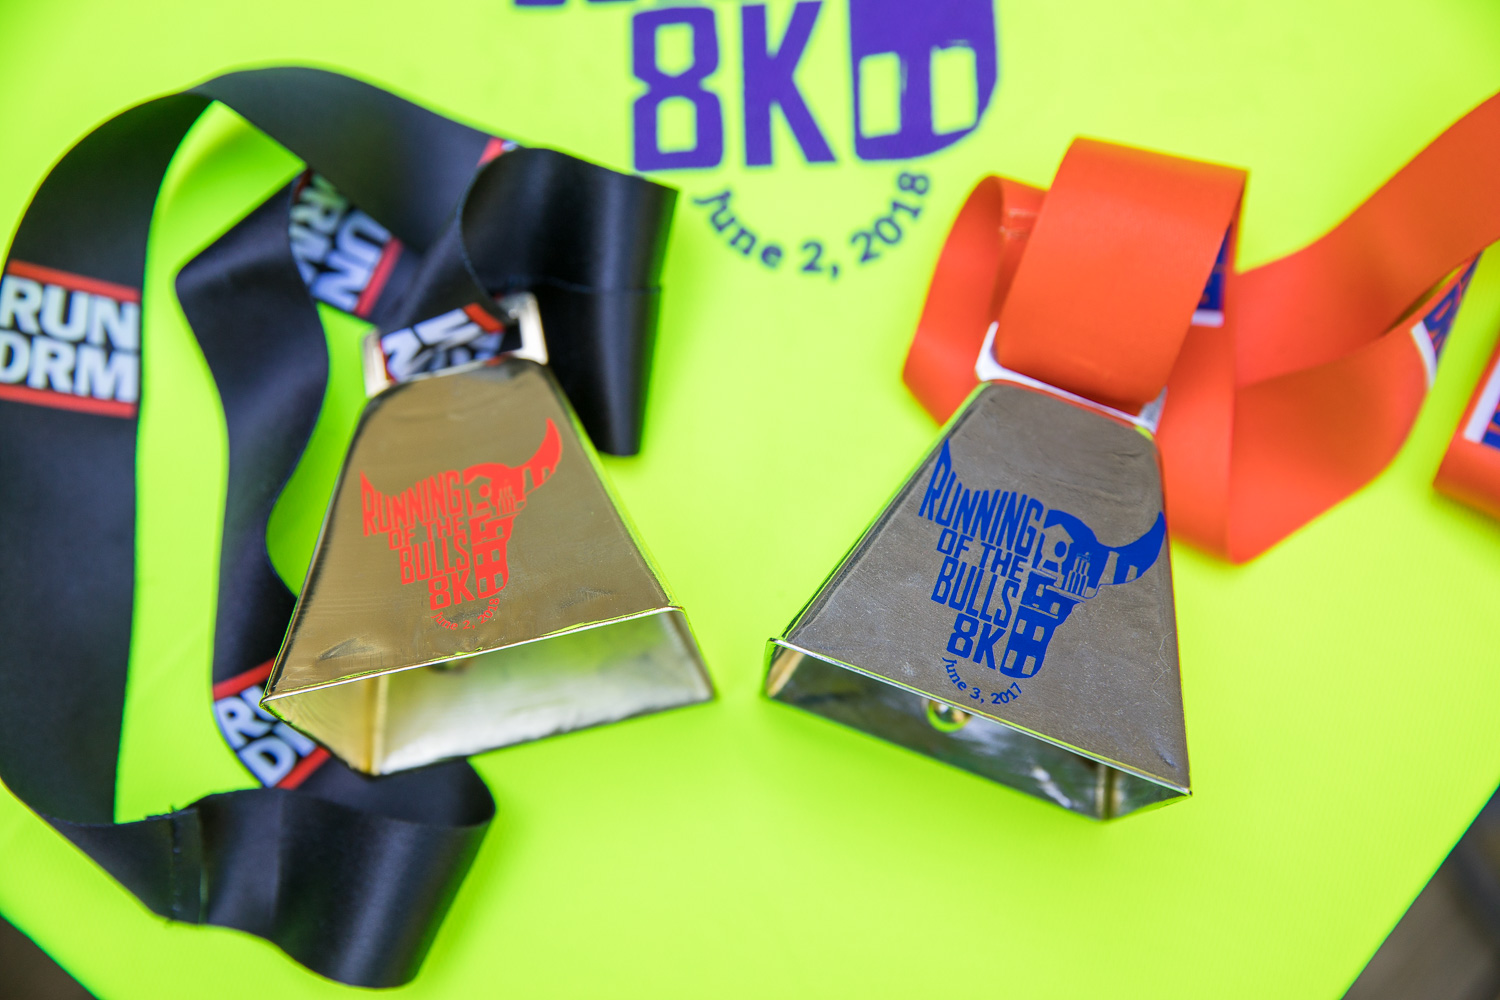 2018 (left) race medal was gold with black ribbon. 2017 (right) race medal was silver with orange ribbon. Both are cowbells!